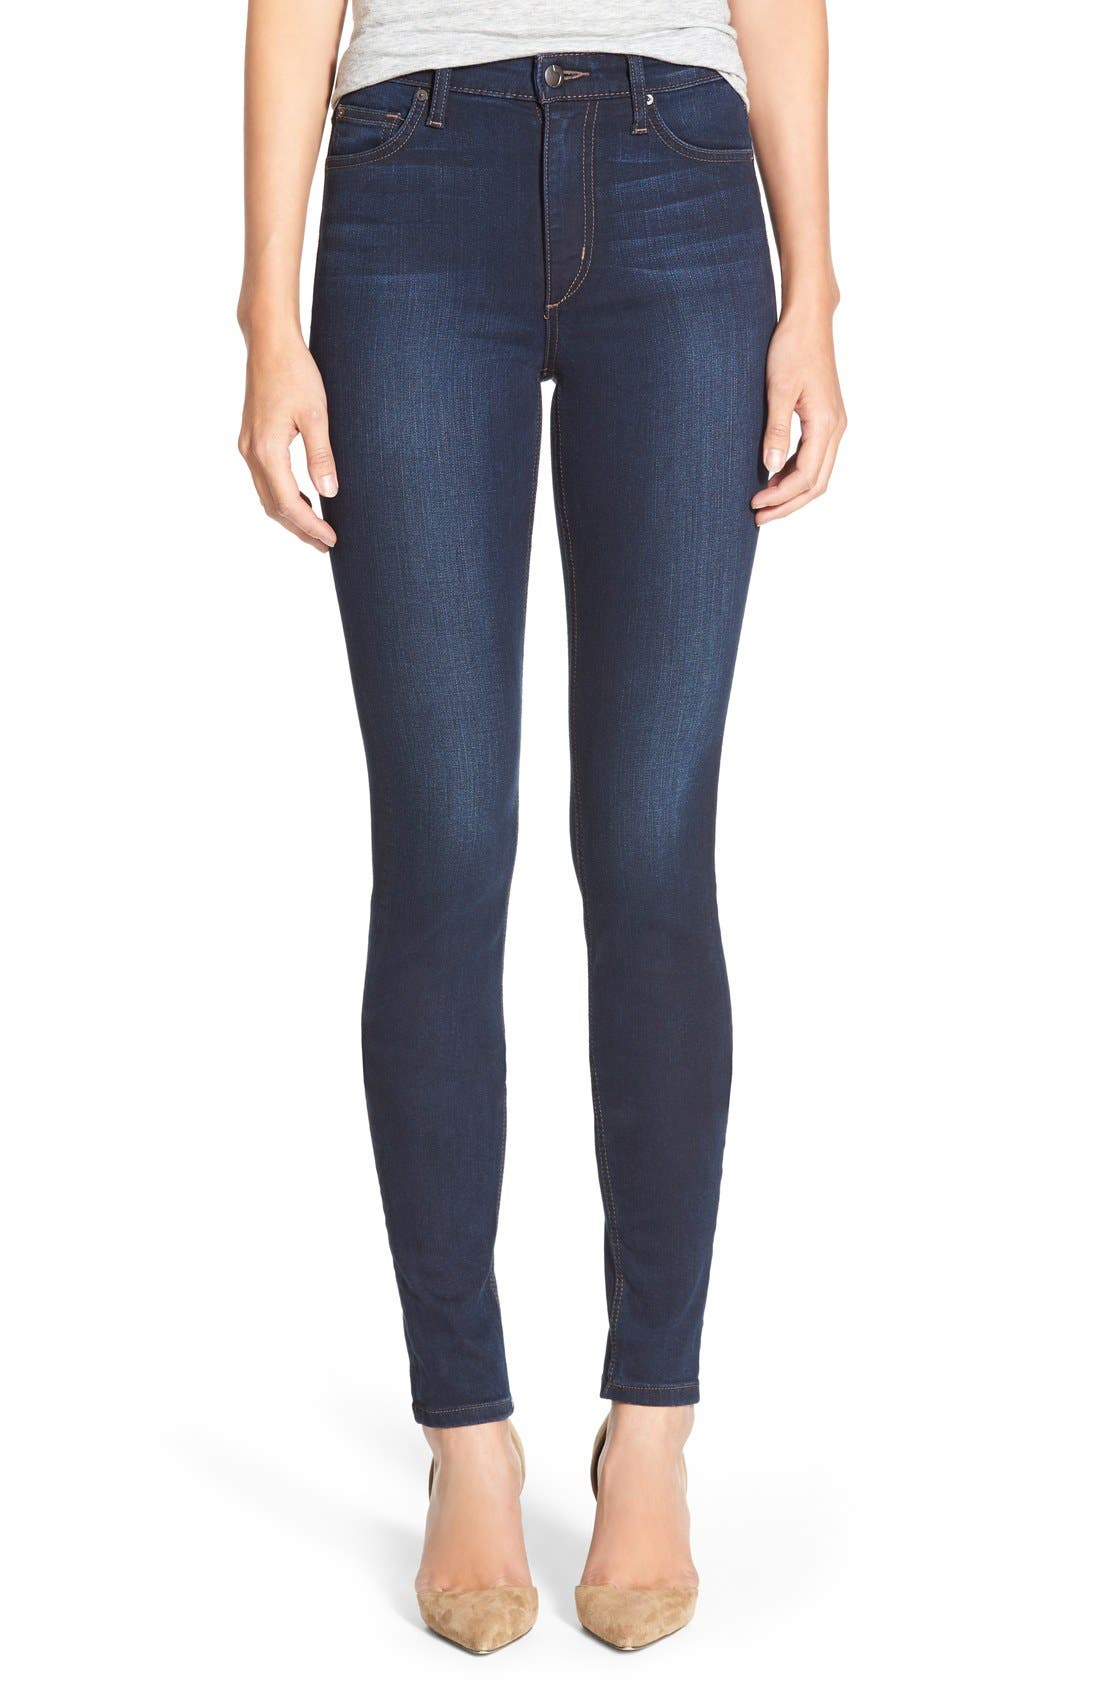 Alternate Image 1 Selected - Joe's 'Flawless - Charlie' High Rise Skinny Jeans (Cecily)